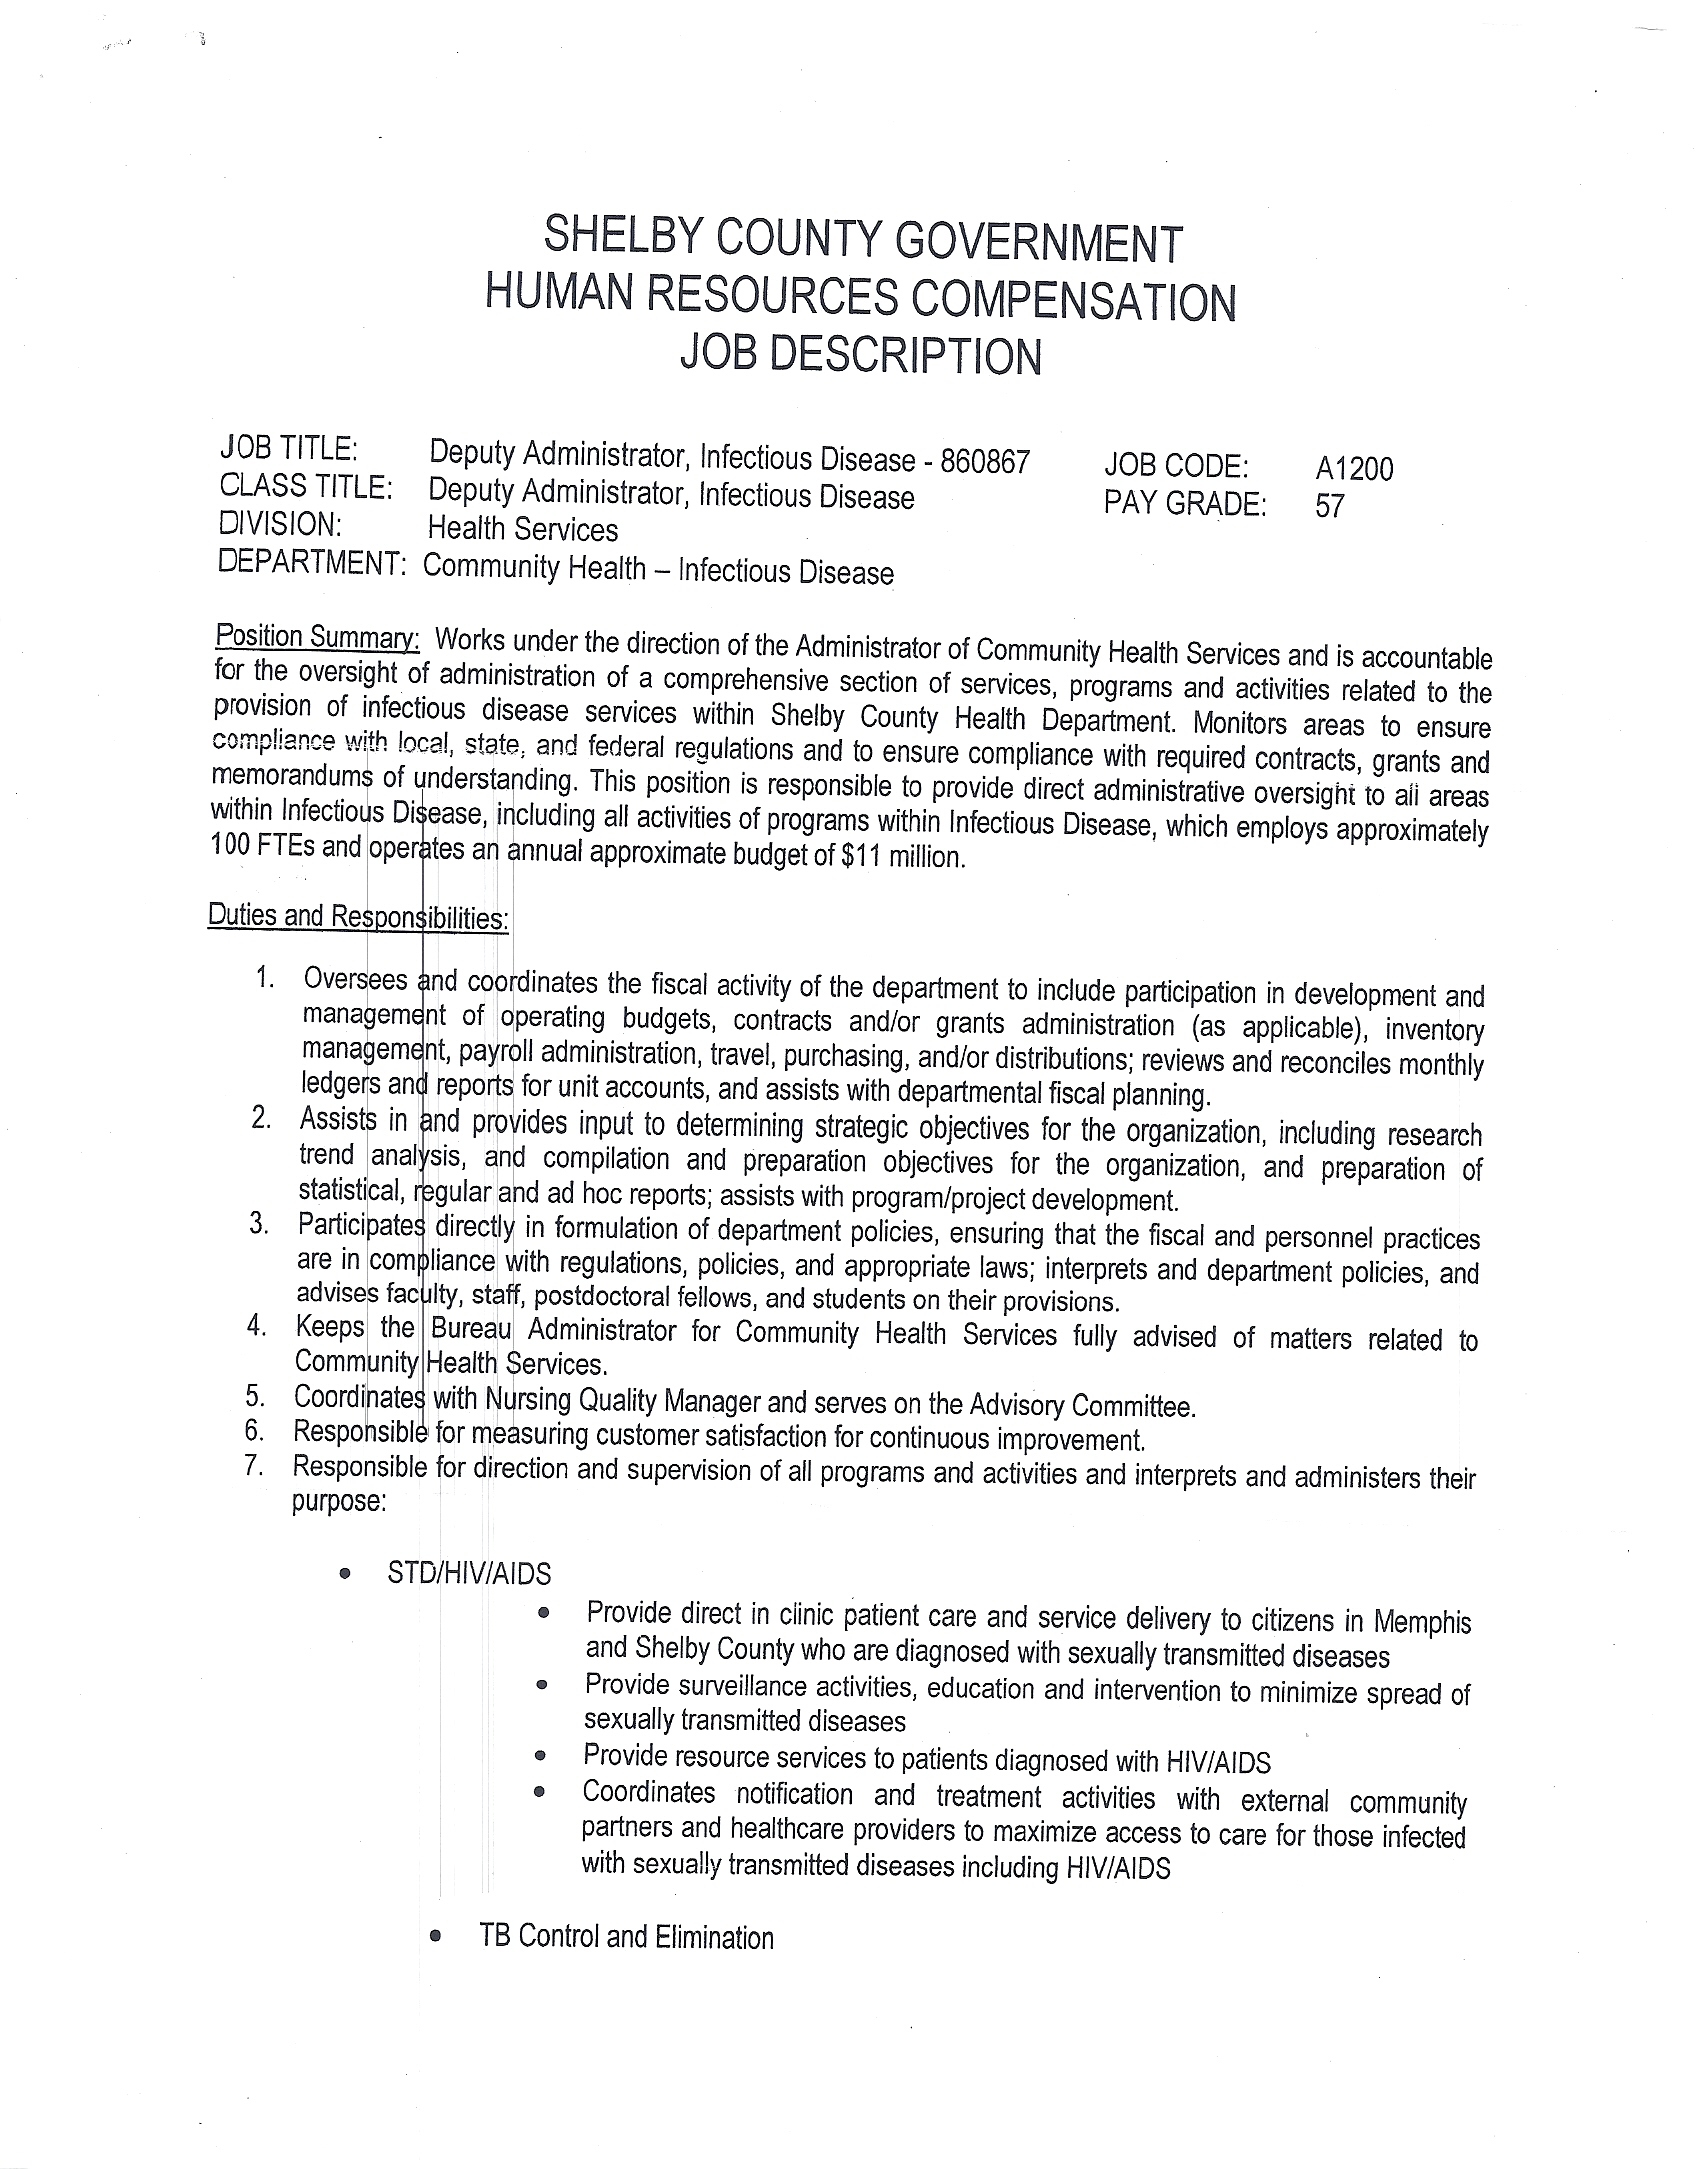 Bad Resume Clip Art   Reentrycorps My Document Blog